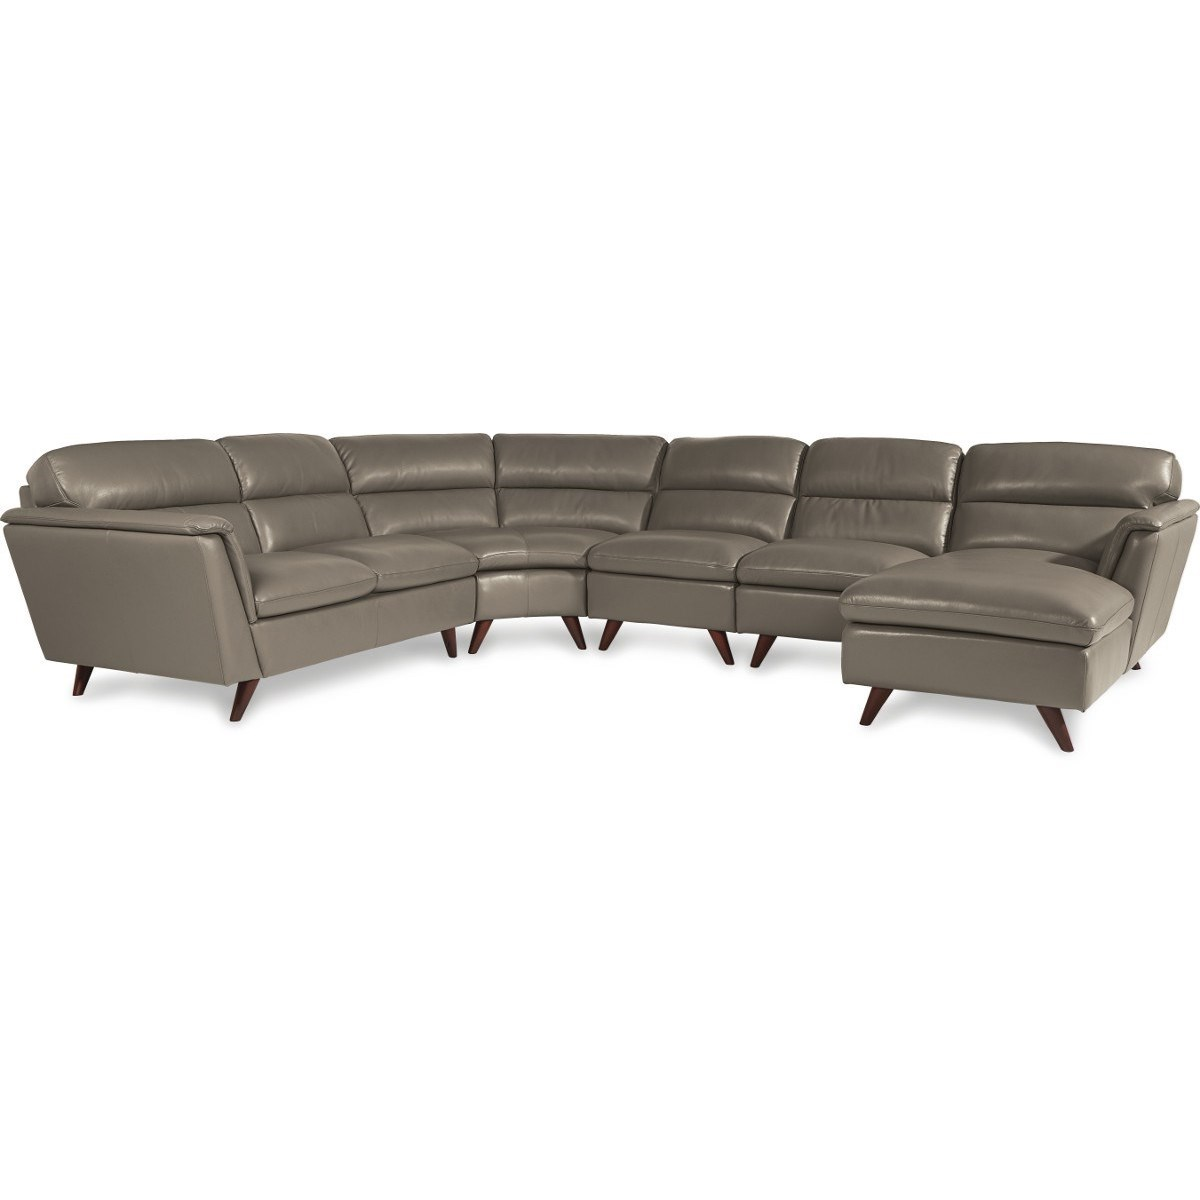 Chaise Z La Z Boy Arrow 5 Pc Sectional Sofa With Left Arm Sitting Chaise